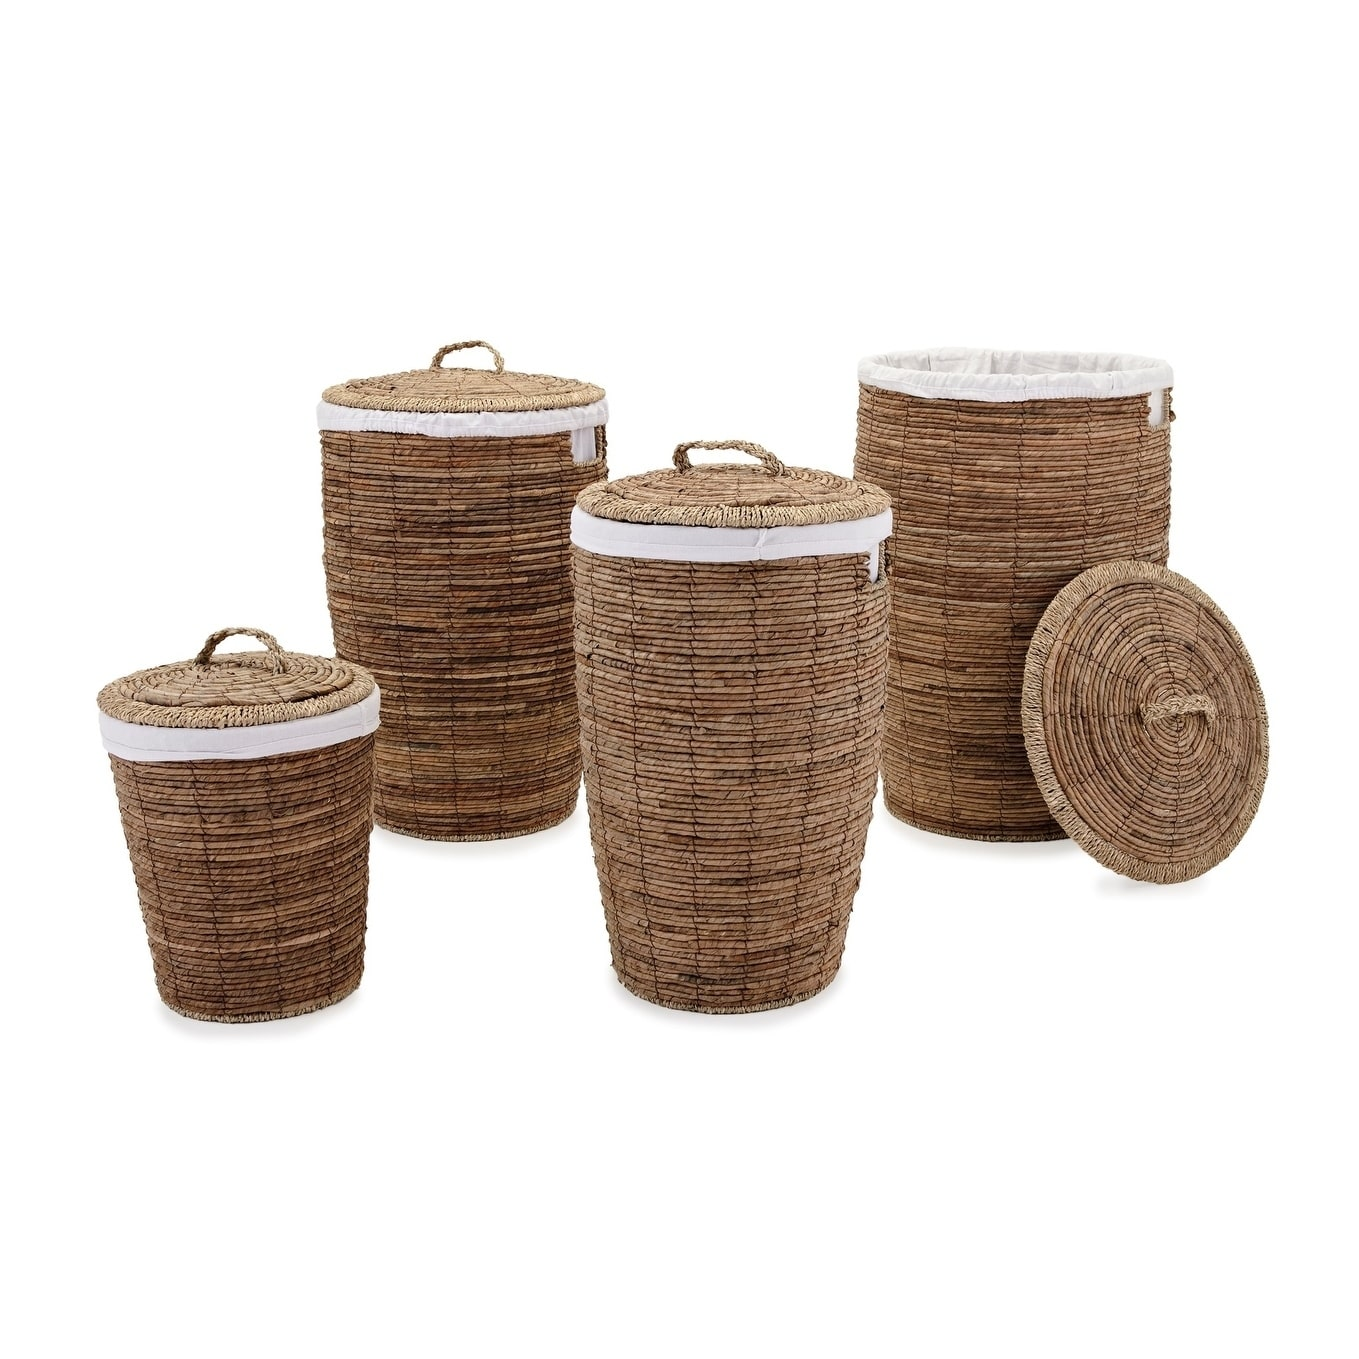 Lolla Baskets with Liners - Set of 4